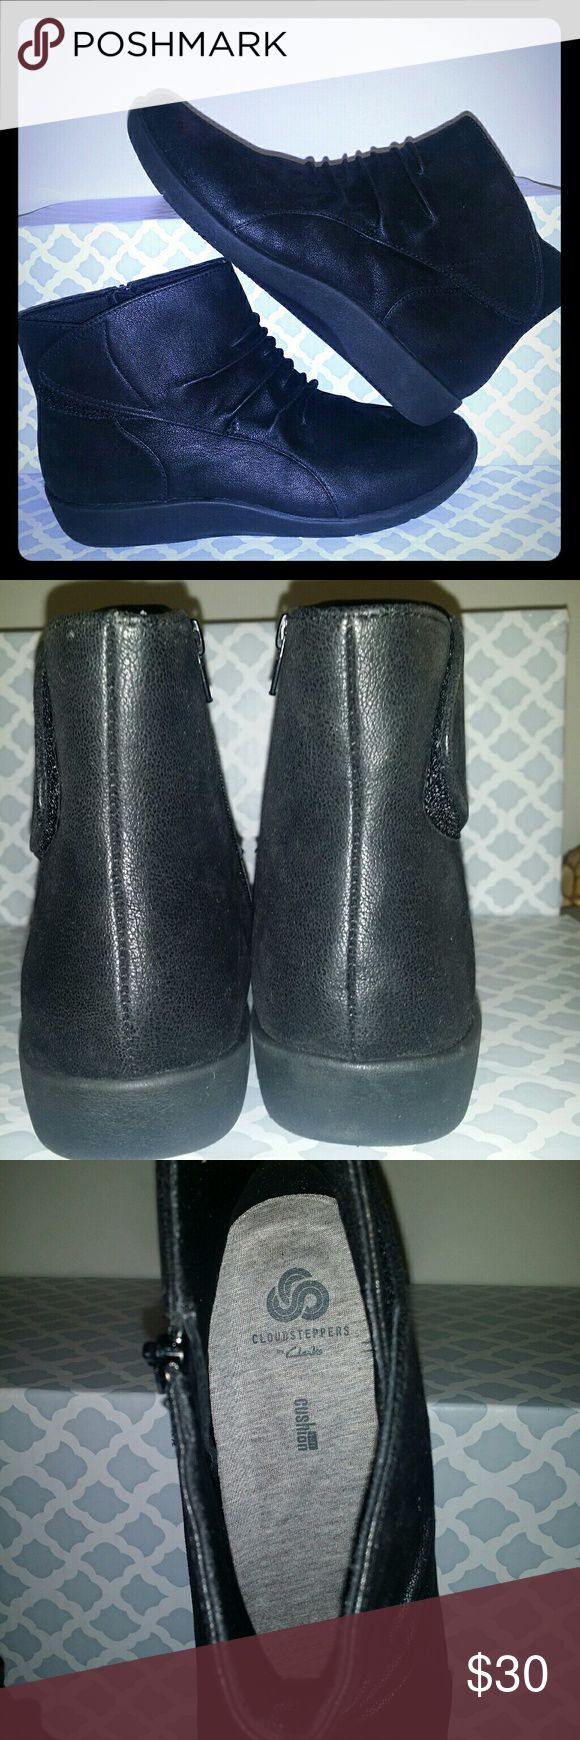 Clarks Shoes Booties Cloud steppers Black Clarks Cloud Steppers Lightweight Ruched Ankle Boots.   Color - Black.  Size - Womens 11 Medium.   Style Name - Sillian Sway.  Item retails for $88.00.   Condition   Great - This item comes from a liquidation sale of the Q home shopping network. It has been inspected and appears to be a customer return showing very slight wear.   Description   Feel light on your feet in these Clarks Cloud Steppers ankle boots. Slip into lightweight booties that keep…